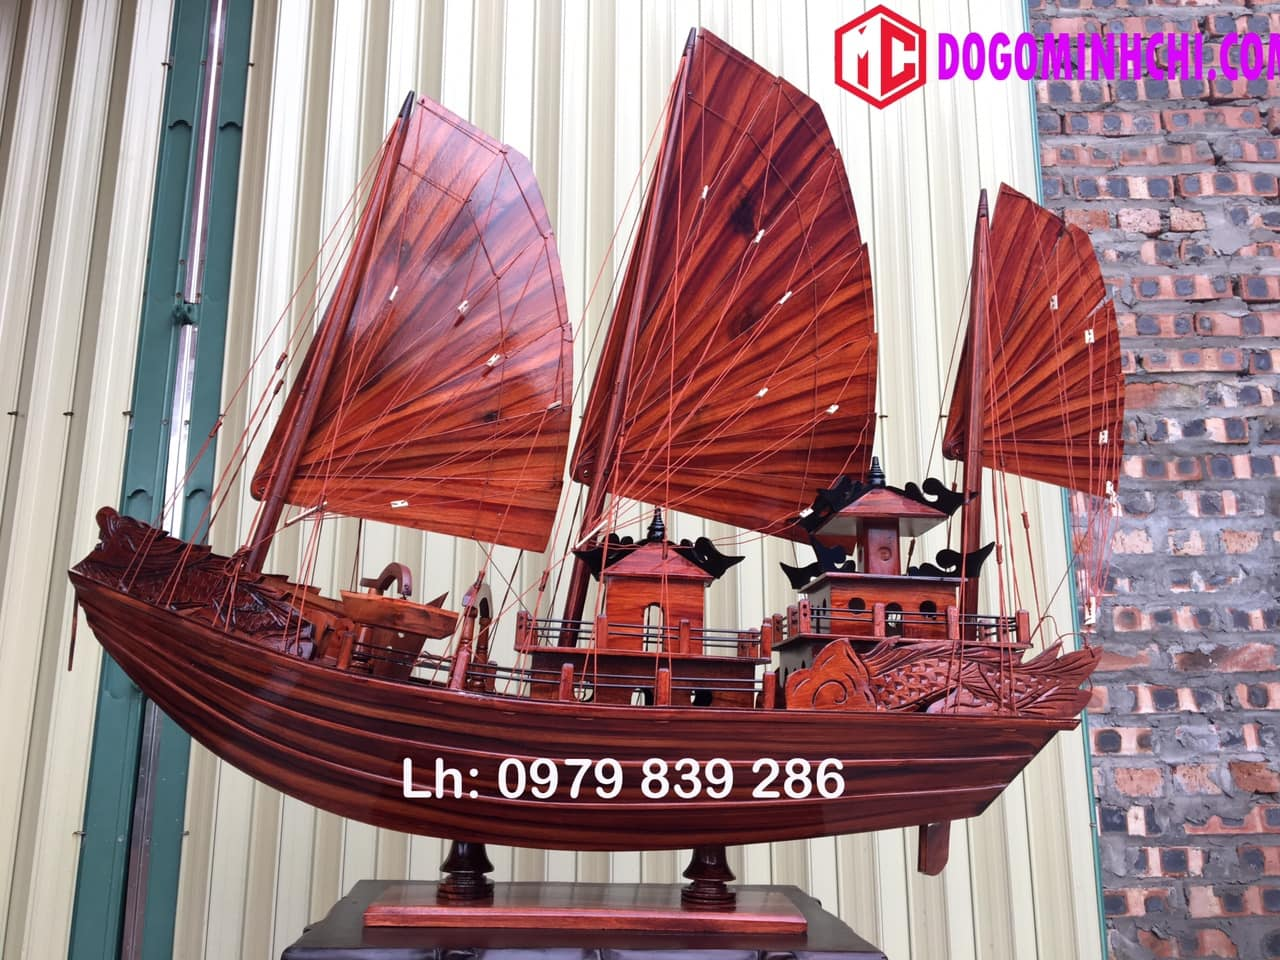 thuyen-buom-rong-ha-long-ms-08-2